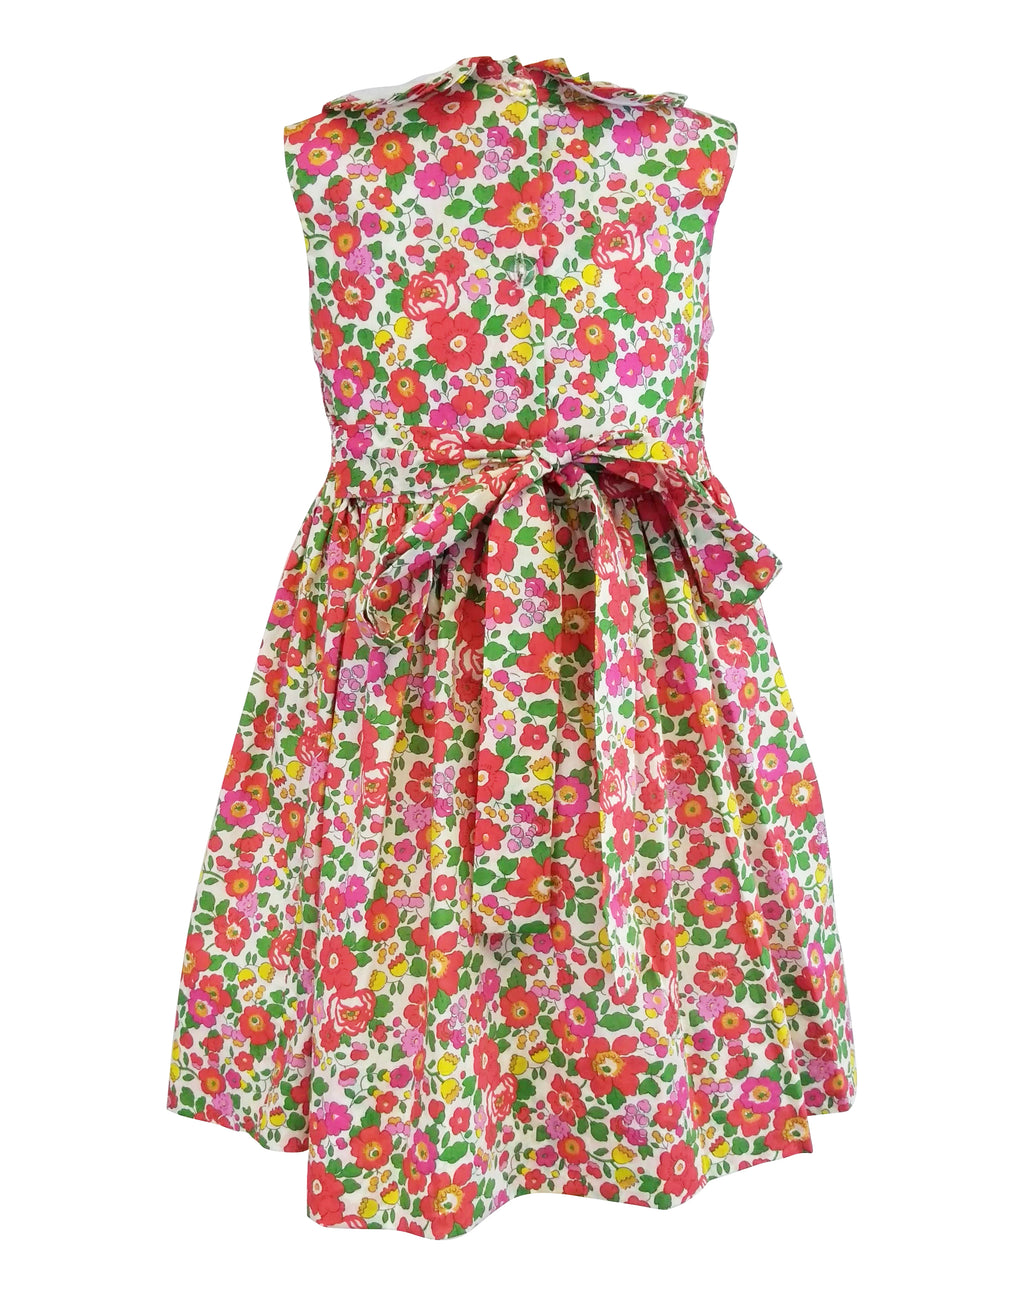 Betsy Liberty of London Smocked Collar Dress - Little Threads Inc. Children's Clothing